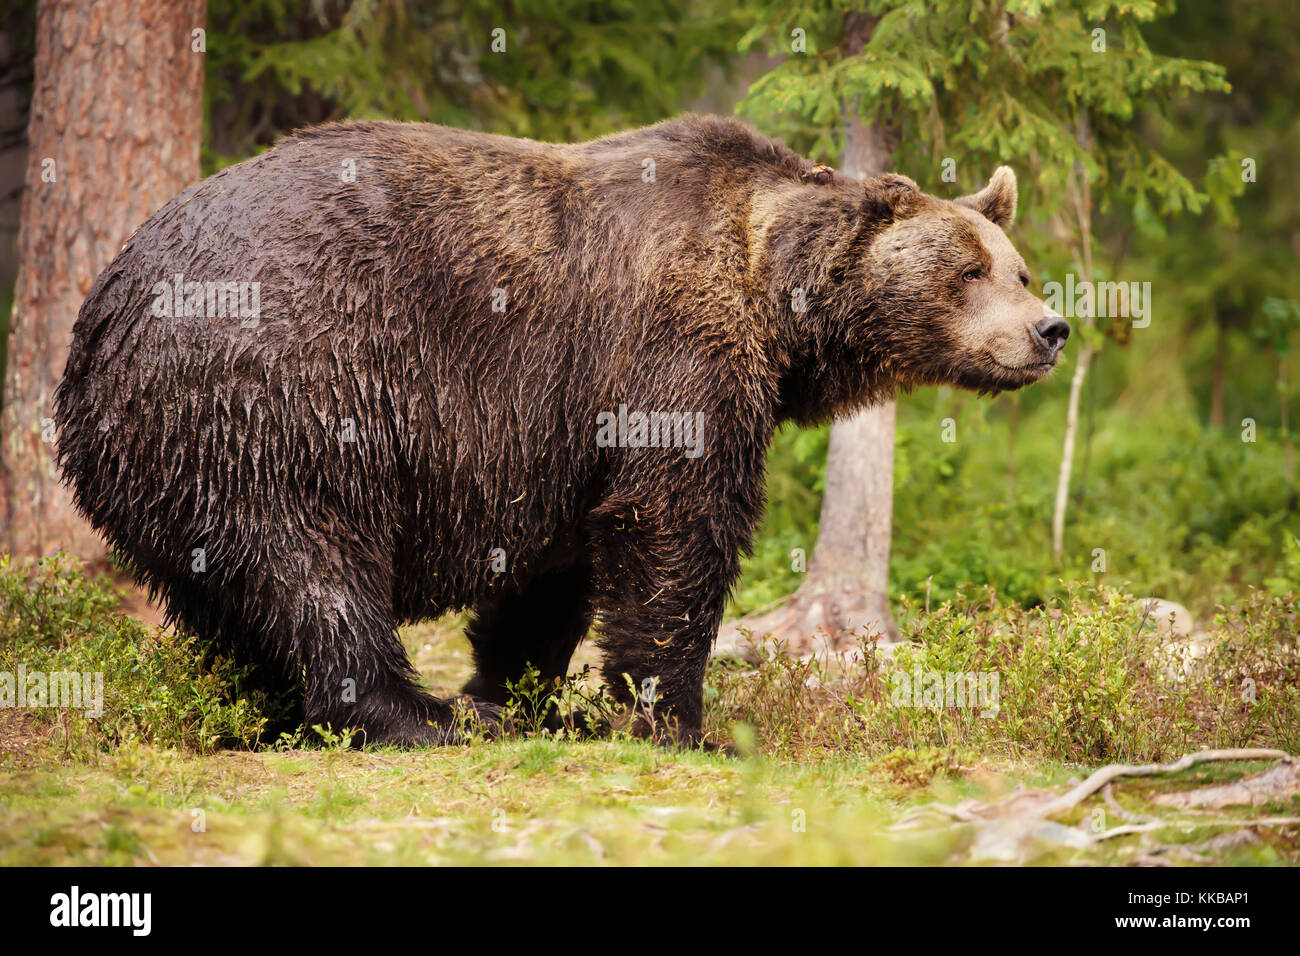 Grizzly Bear Happy Photos Grizzly Bear Happy Images Alamy